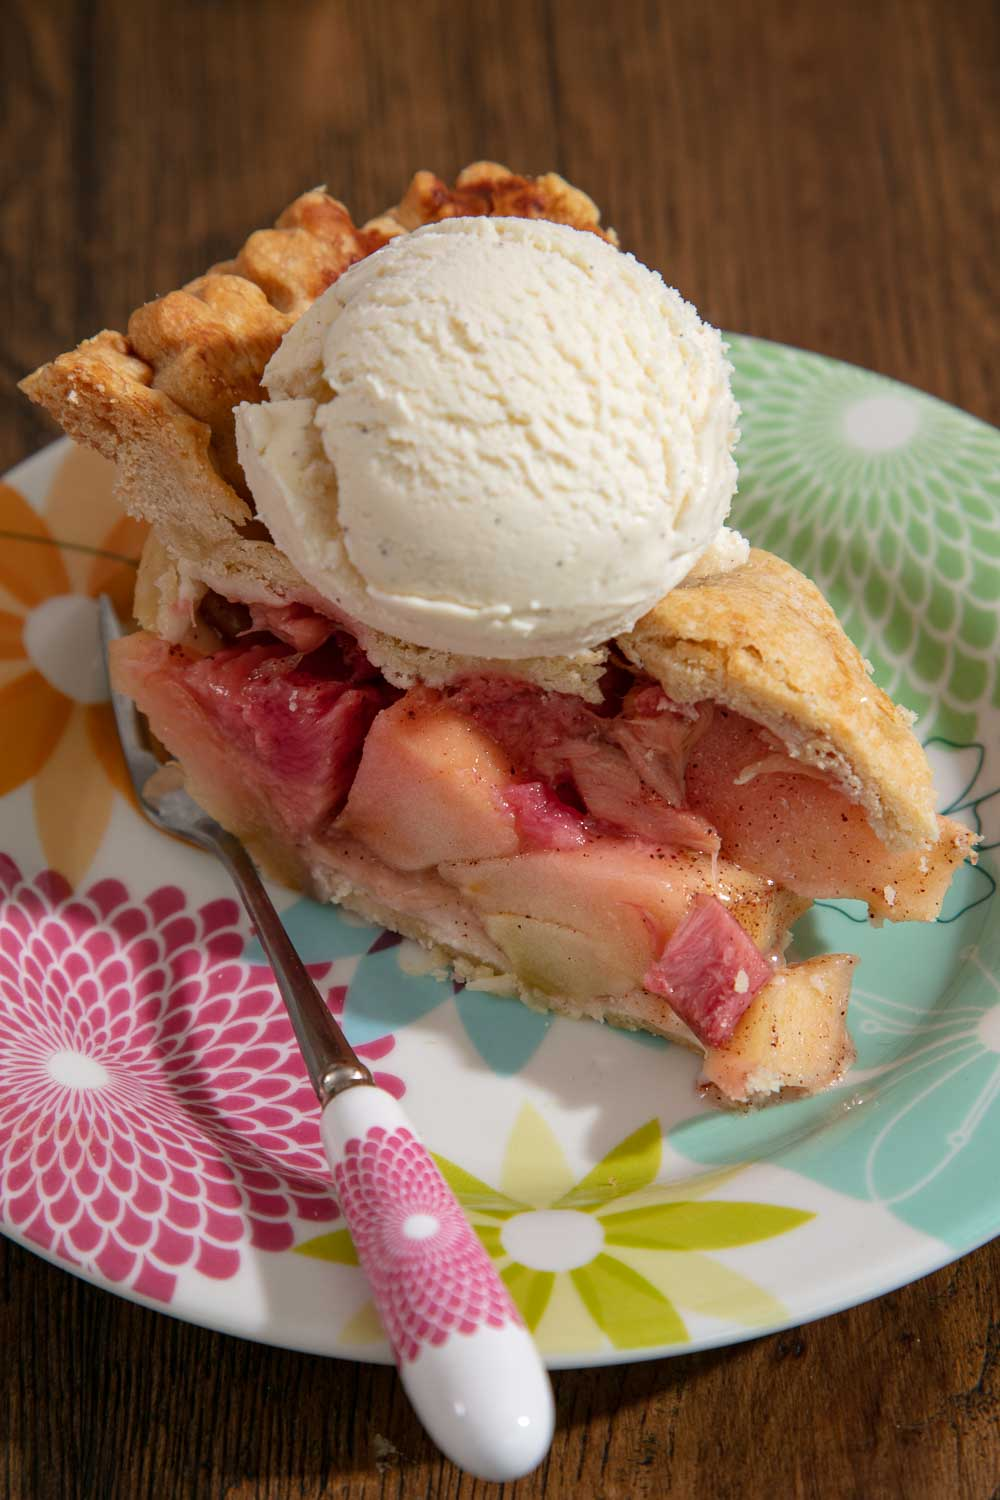 A slice of apple and rhubarb pie with a scoop of vanilla ice cream.